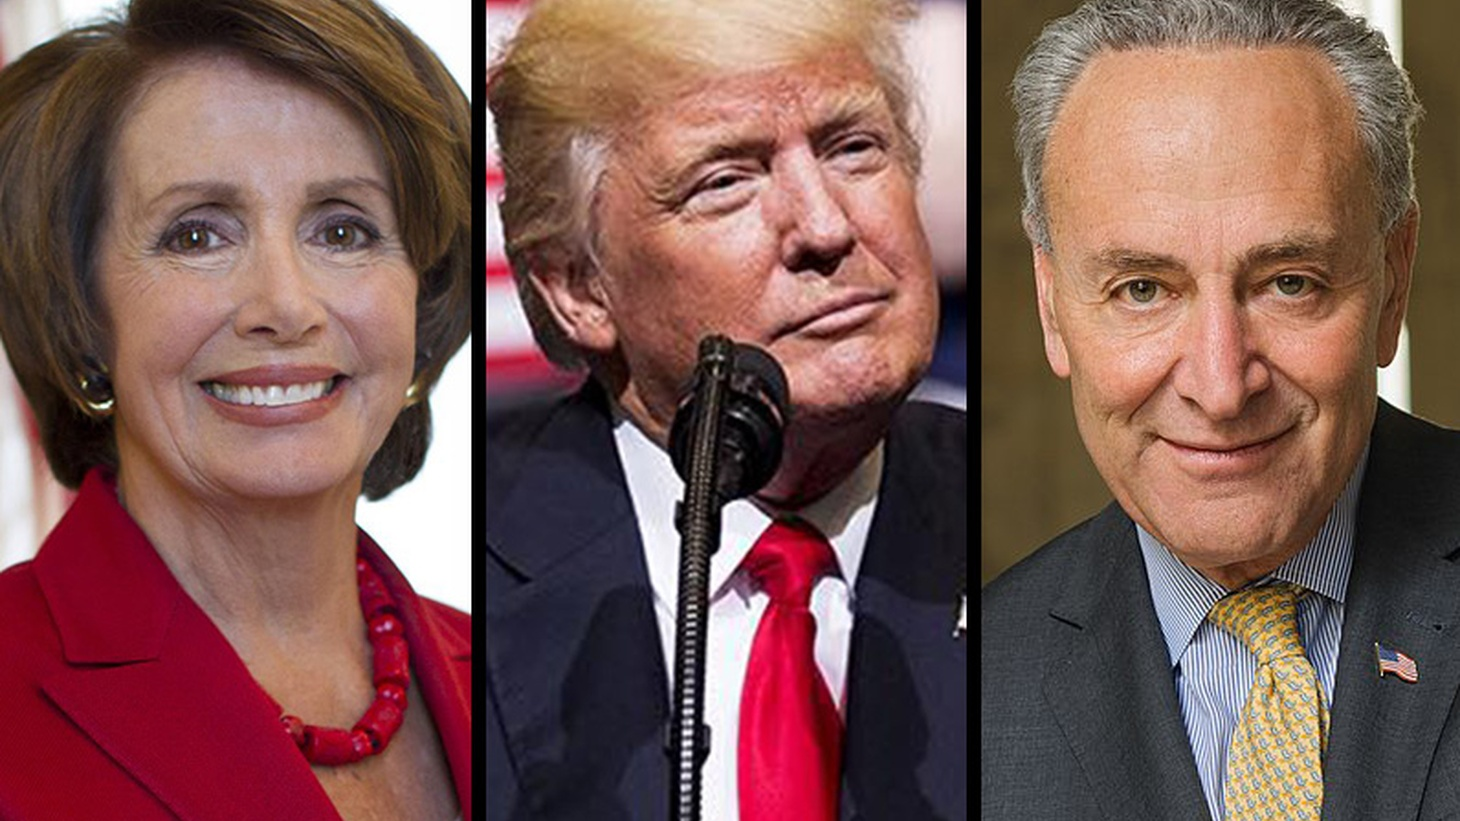 President Trump struck a deal last week with Democrats Nancy Pelosi and Chuck Schumer. Or did he? Sometimes he sounds like he did and sometimes he doesn't. We look at what might or might not be next for the Dreamers protected by DACA.